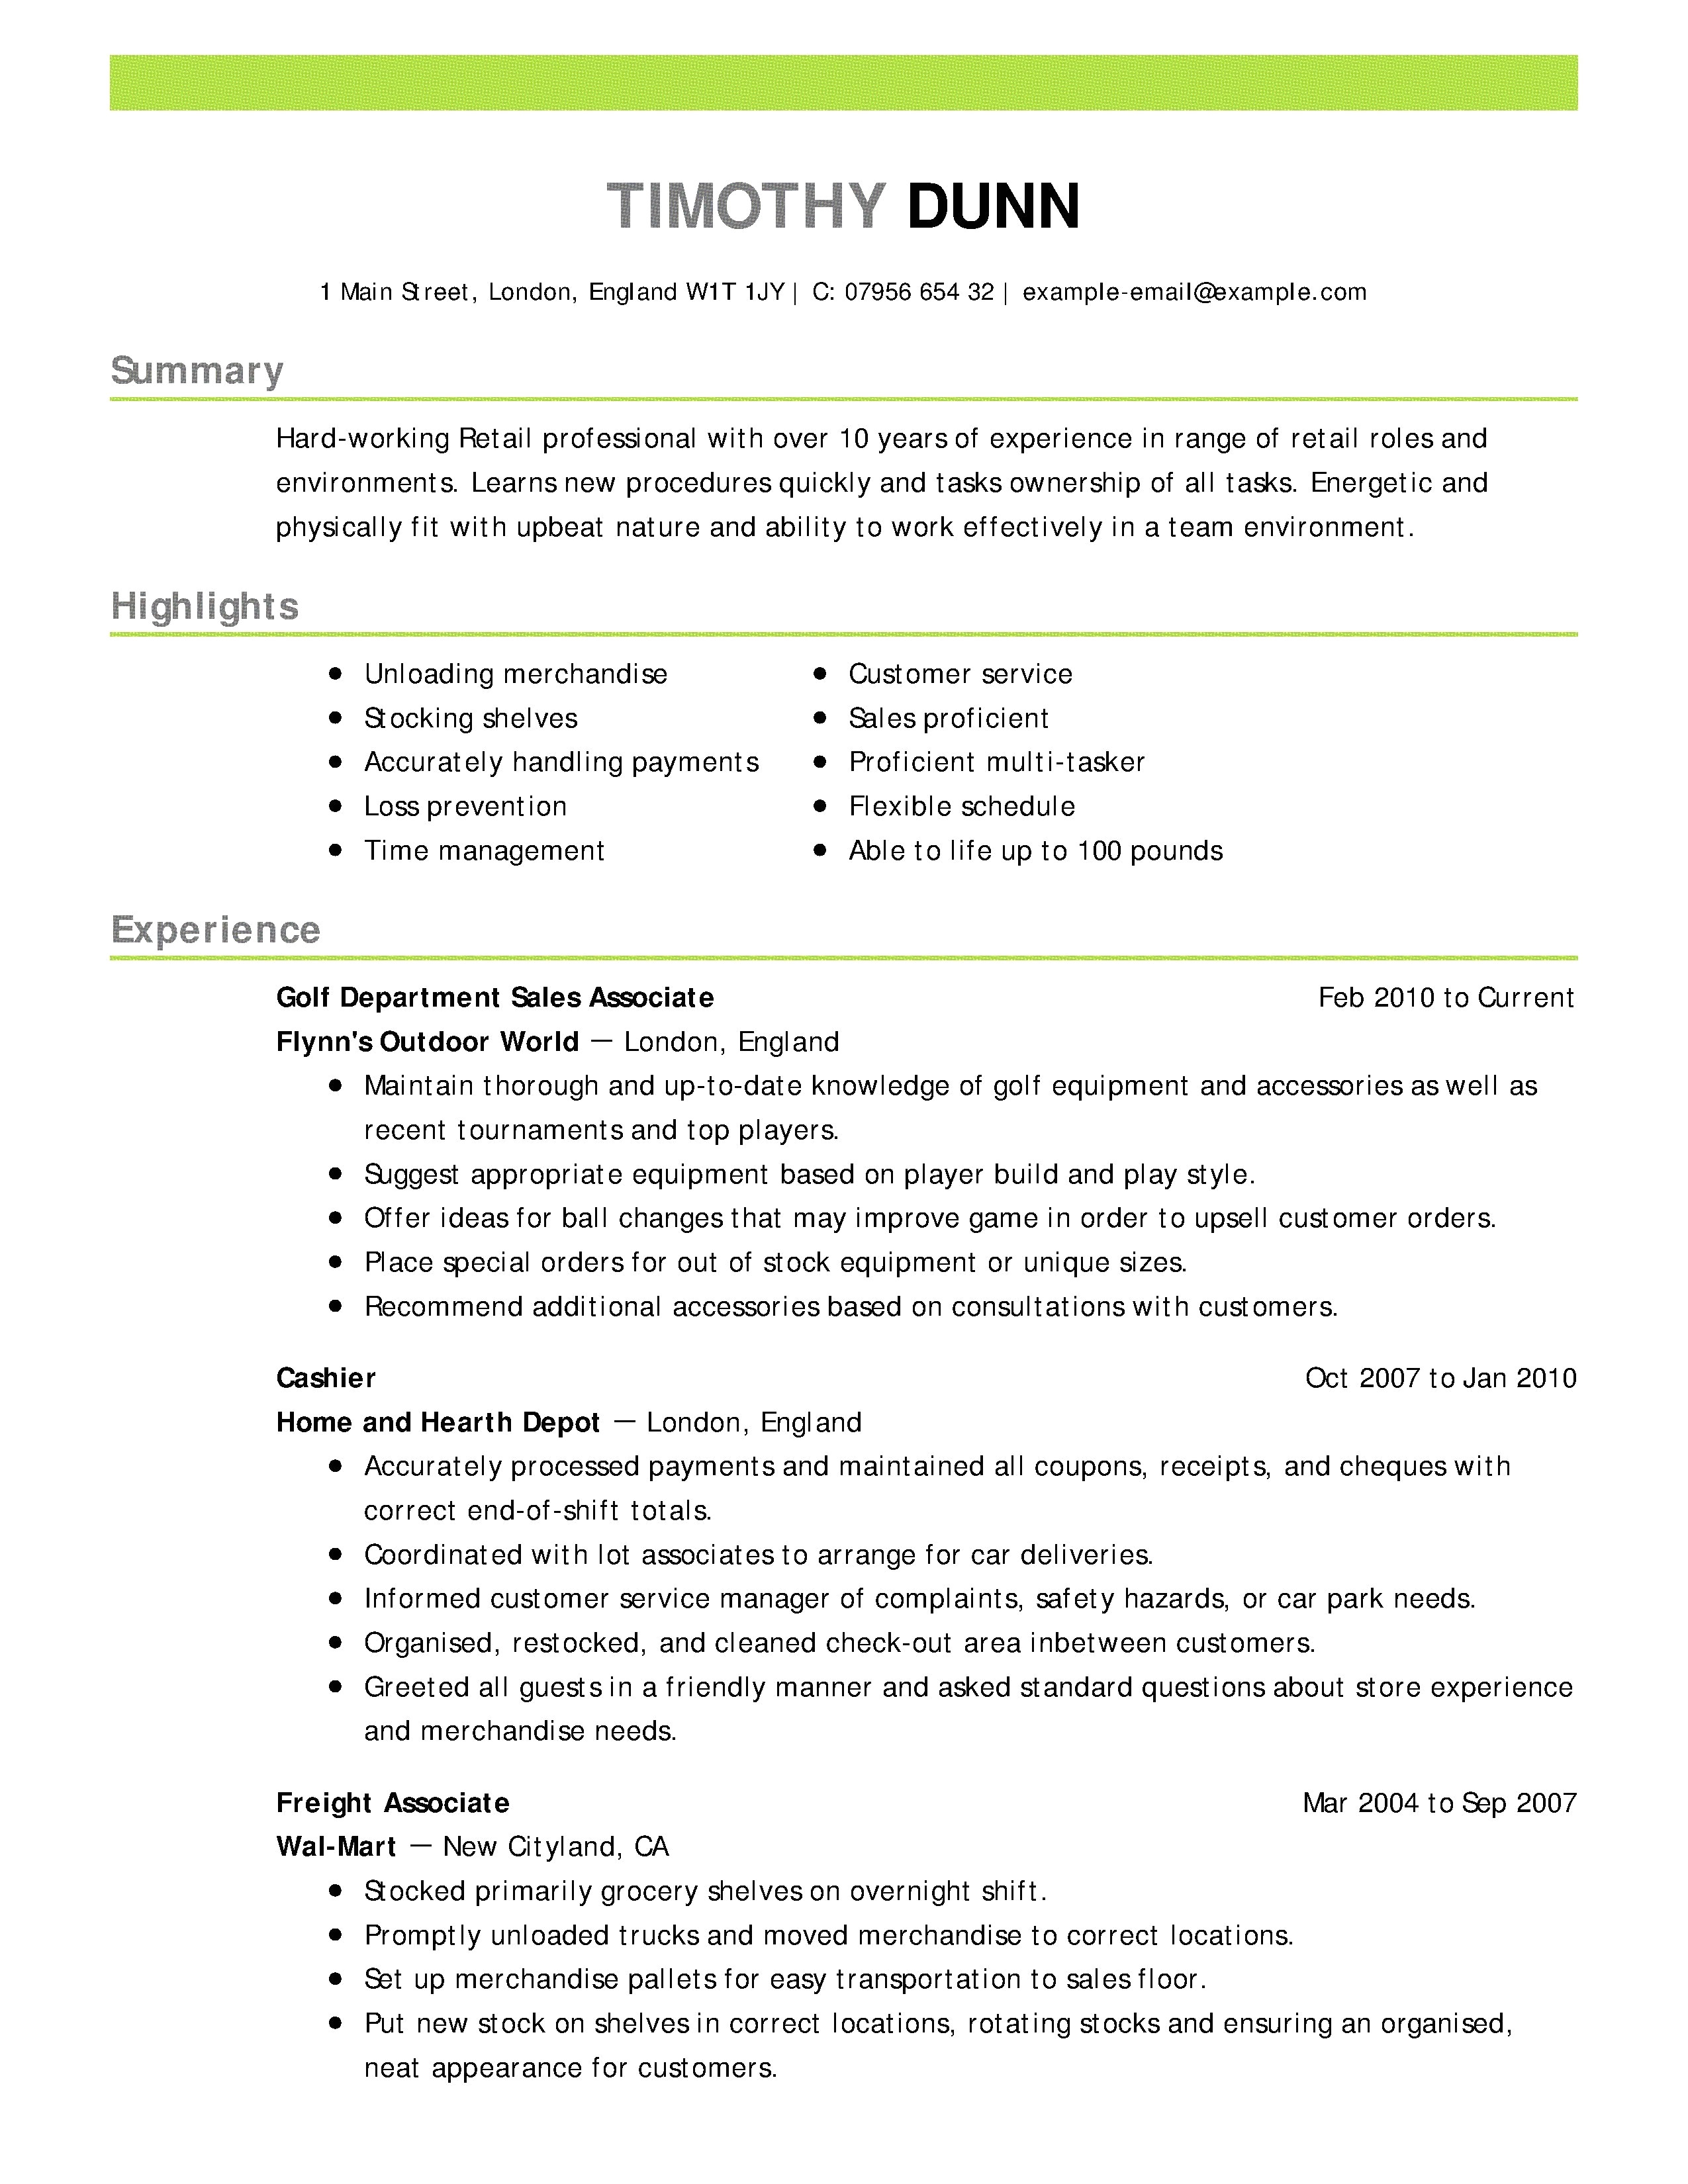 Professional Free Resume Templates - 37 Concepts Nice Resume Templates